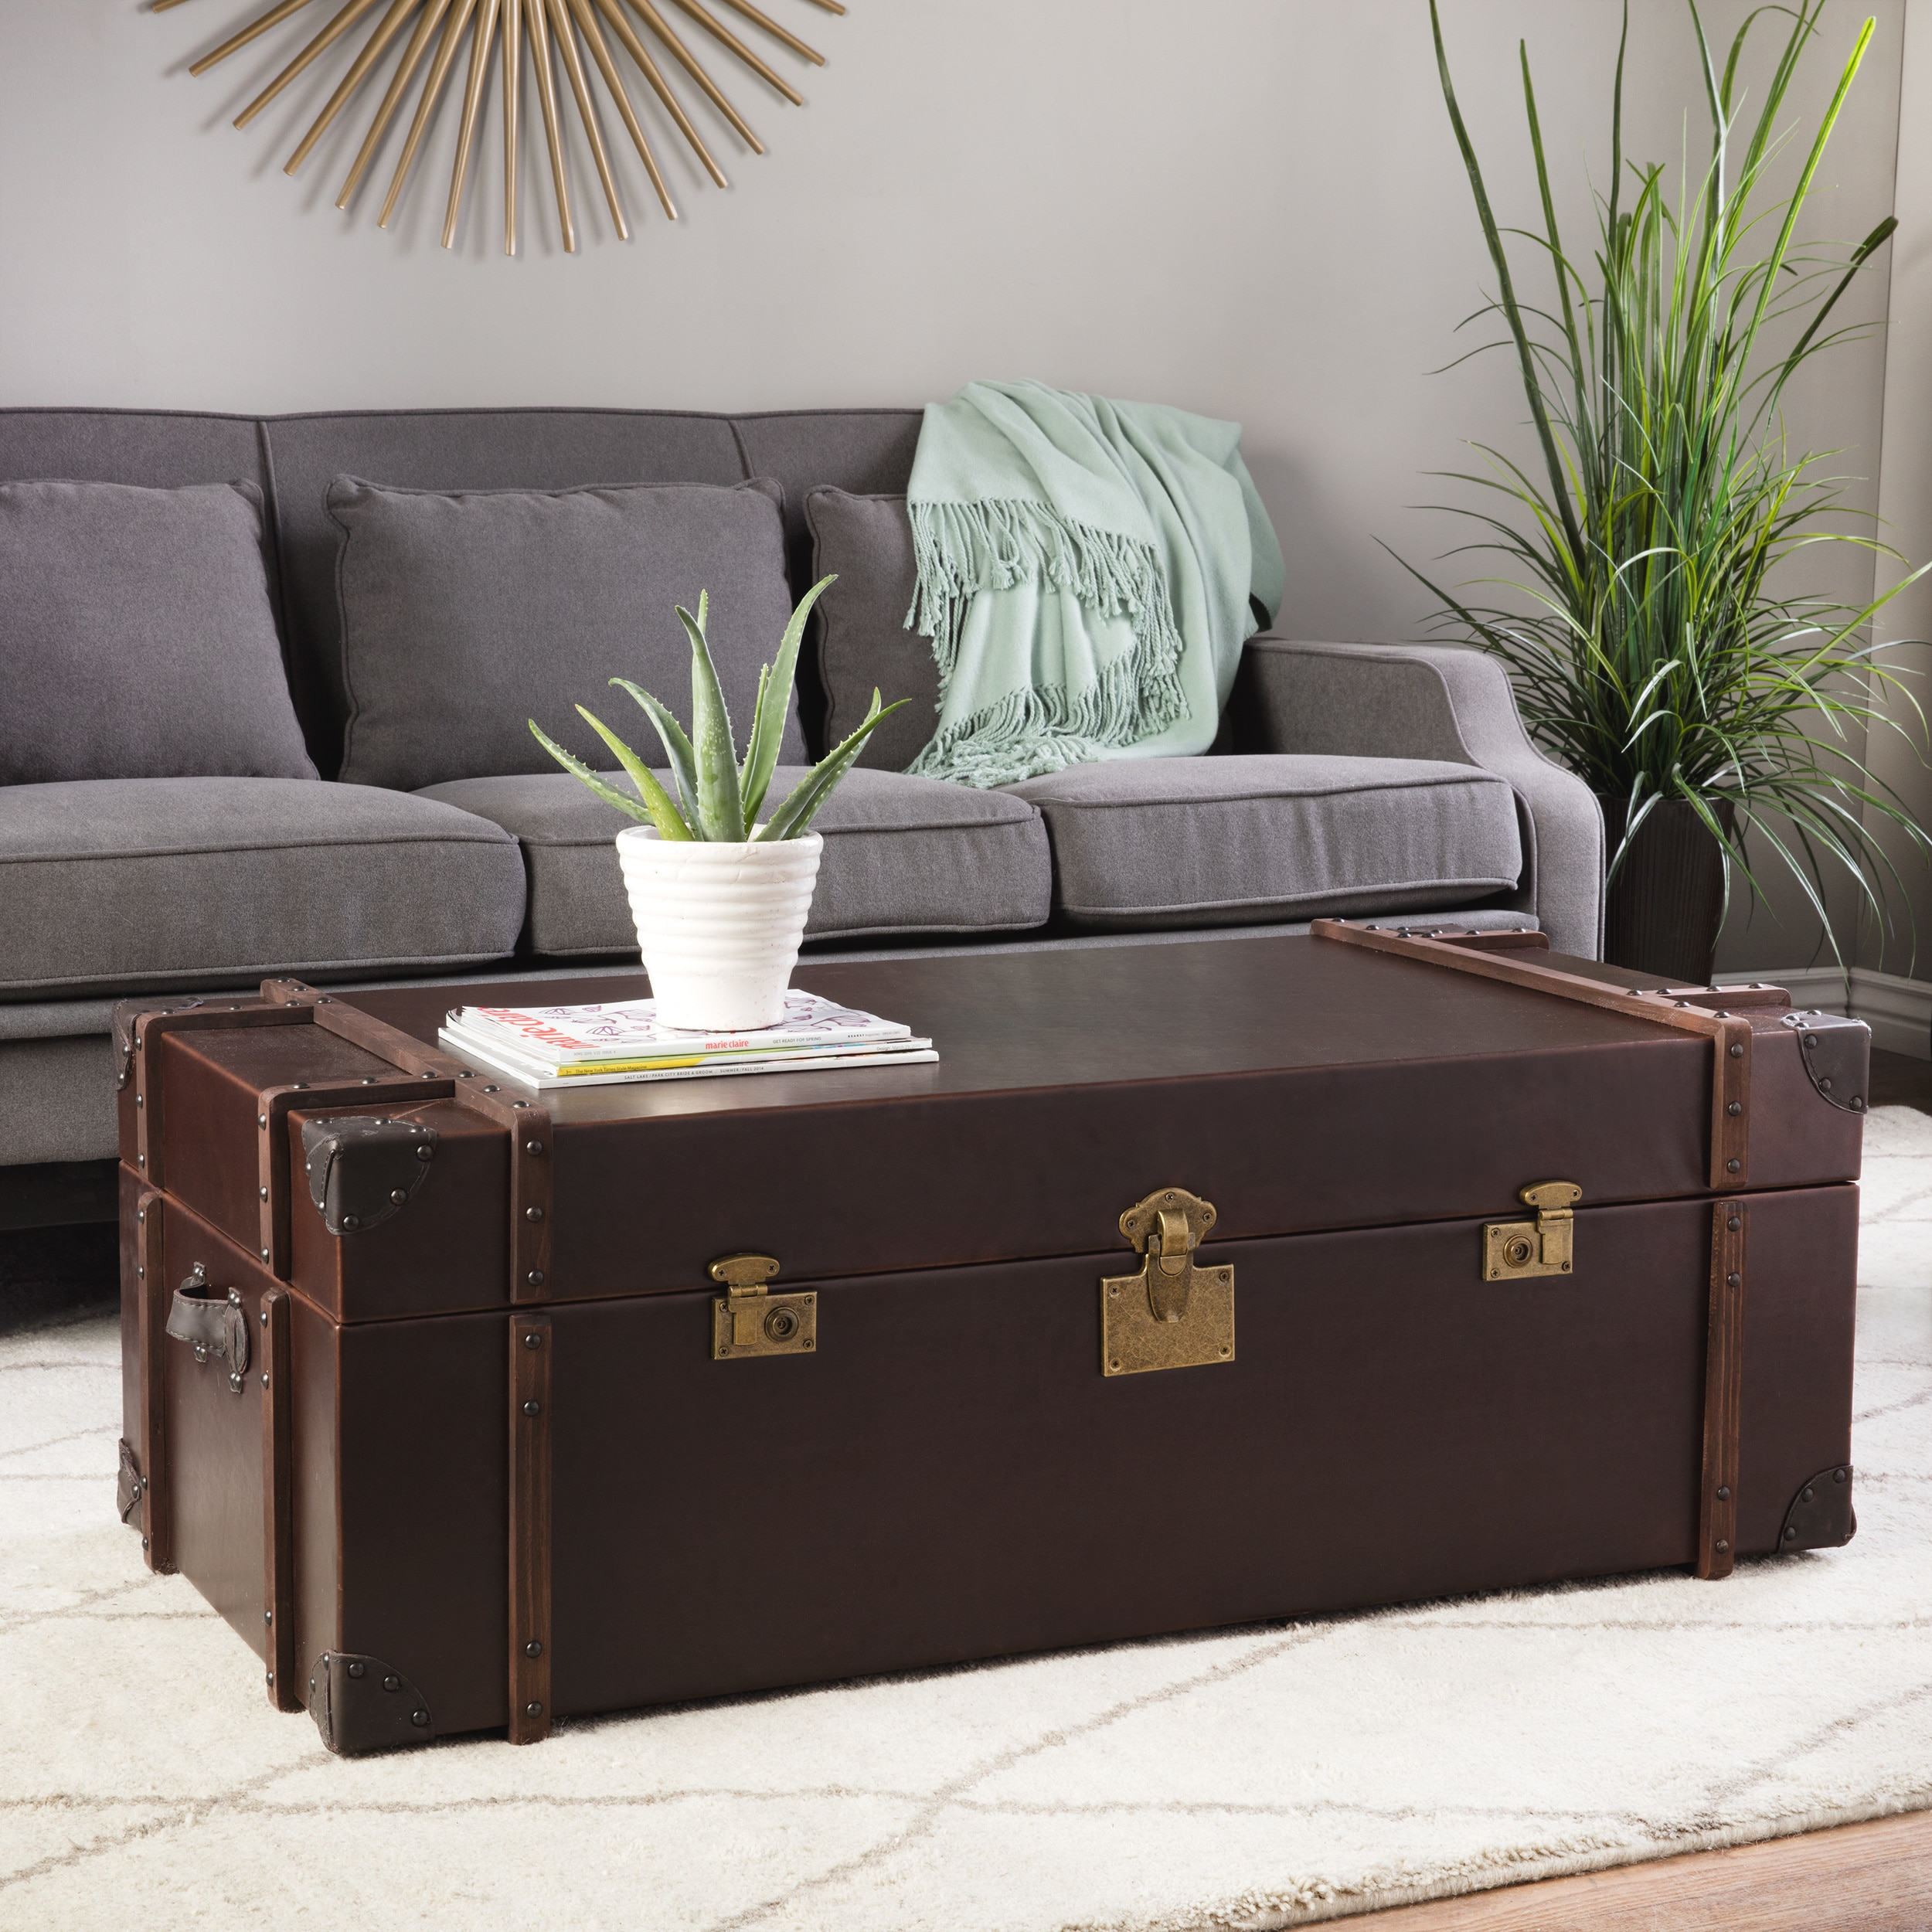 Overstock.com Journey Vintage Tobacco Leather Trunk Coffee Table at Sears.com